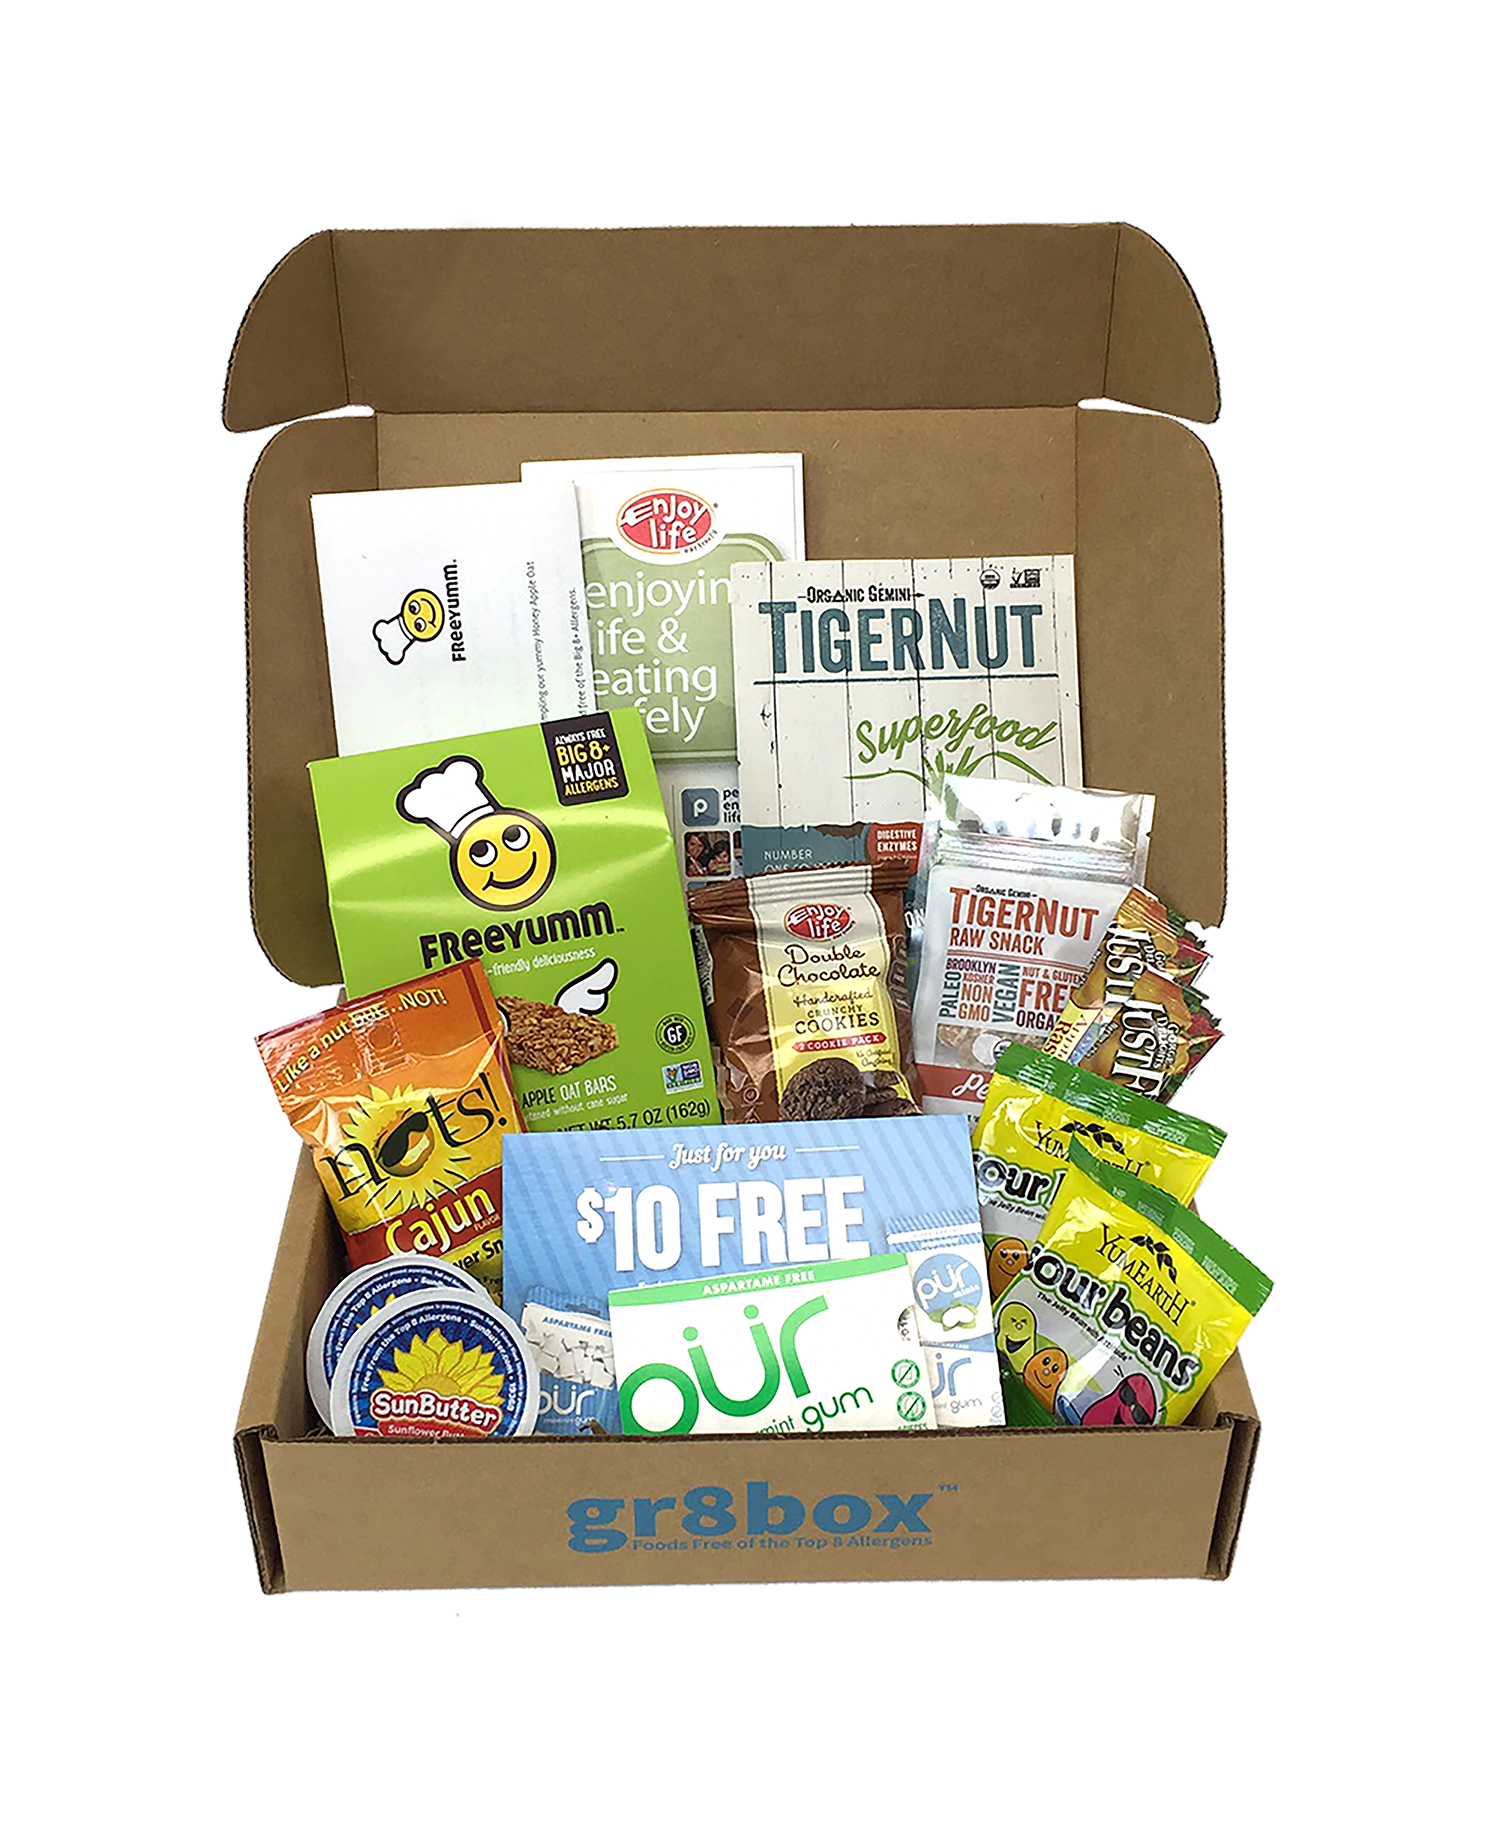 Have You Heard of gr8box, Foods Free of the Top Eight Allergens